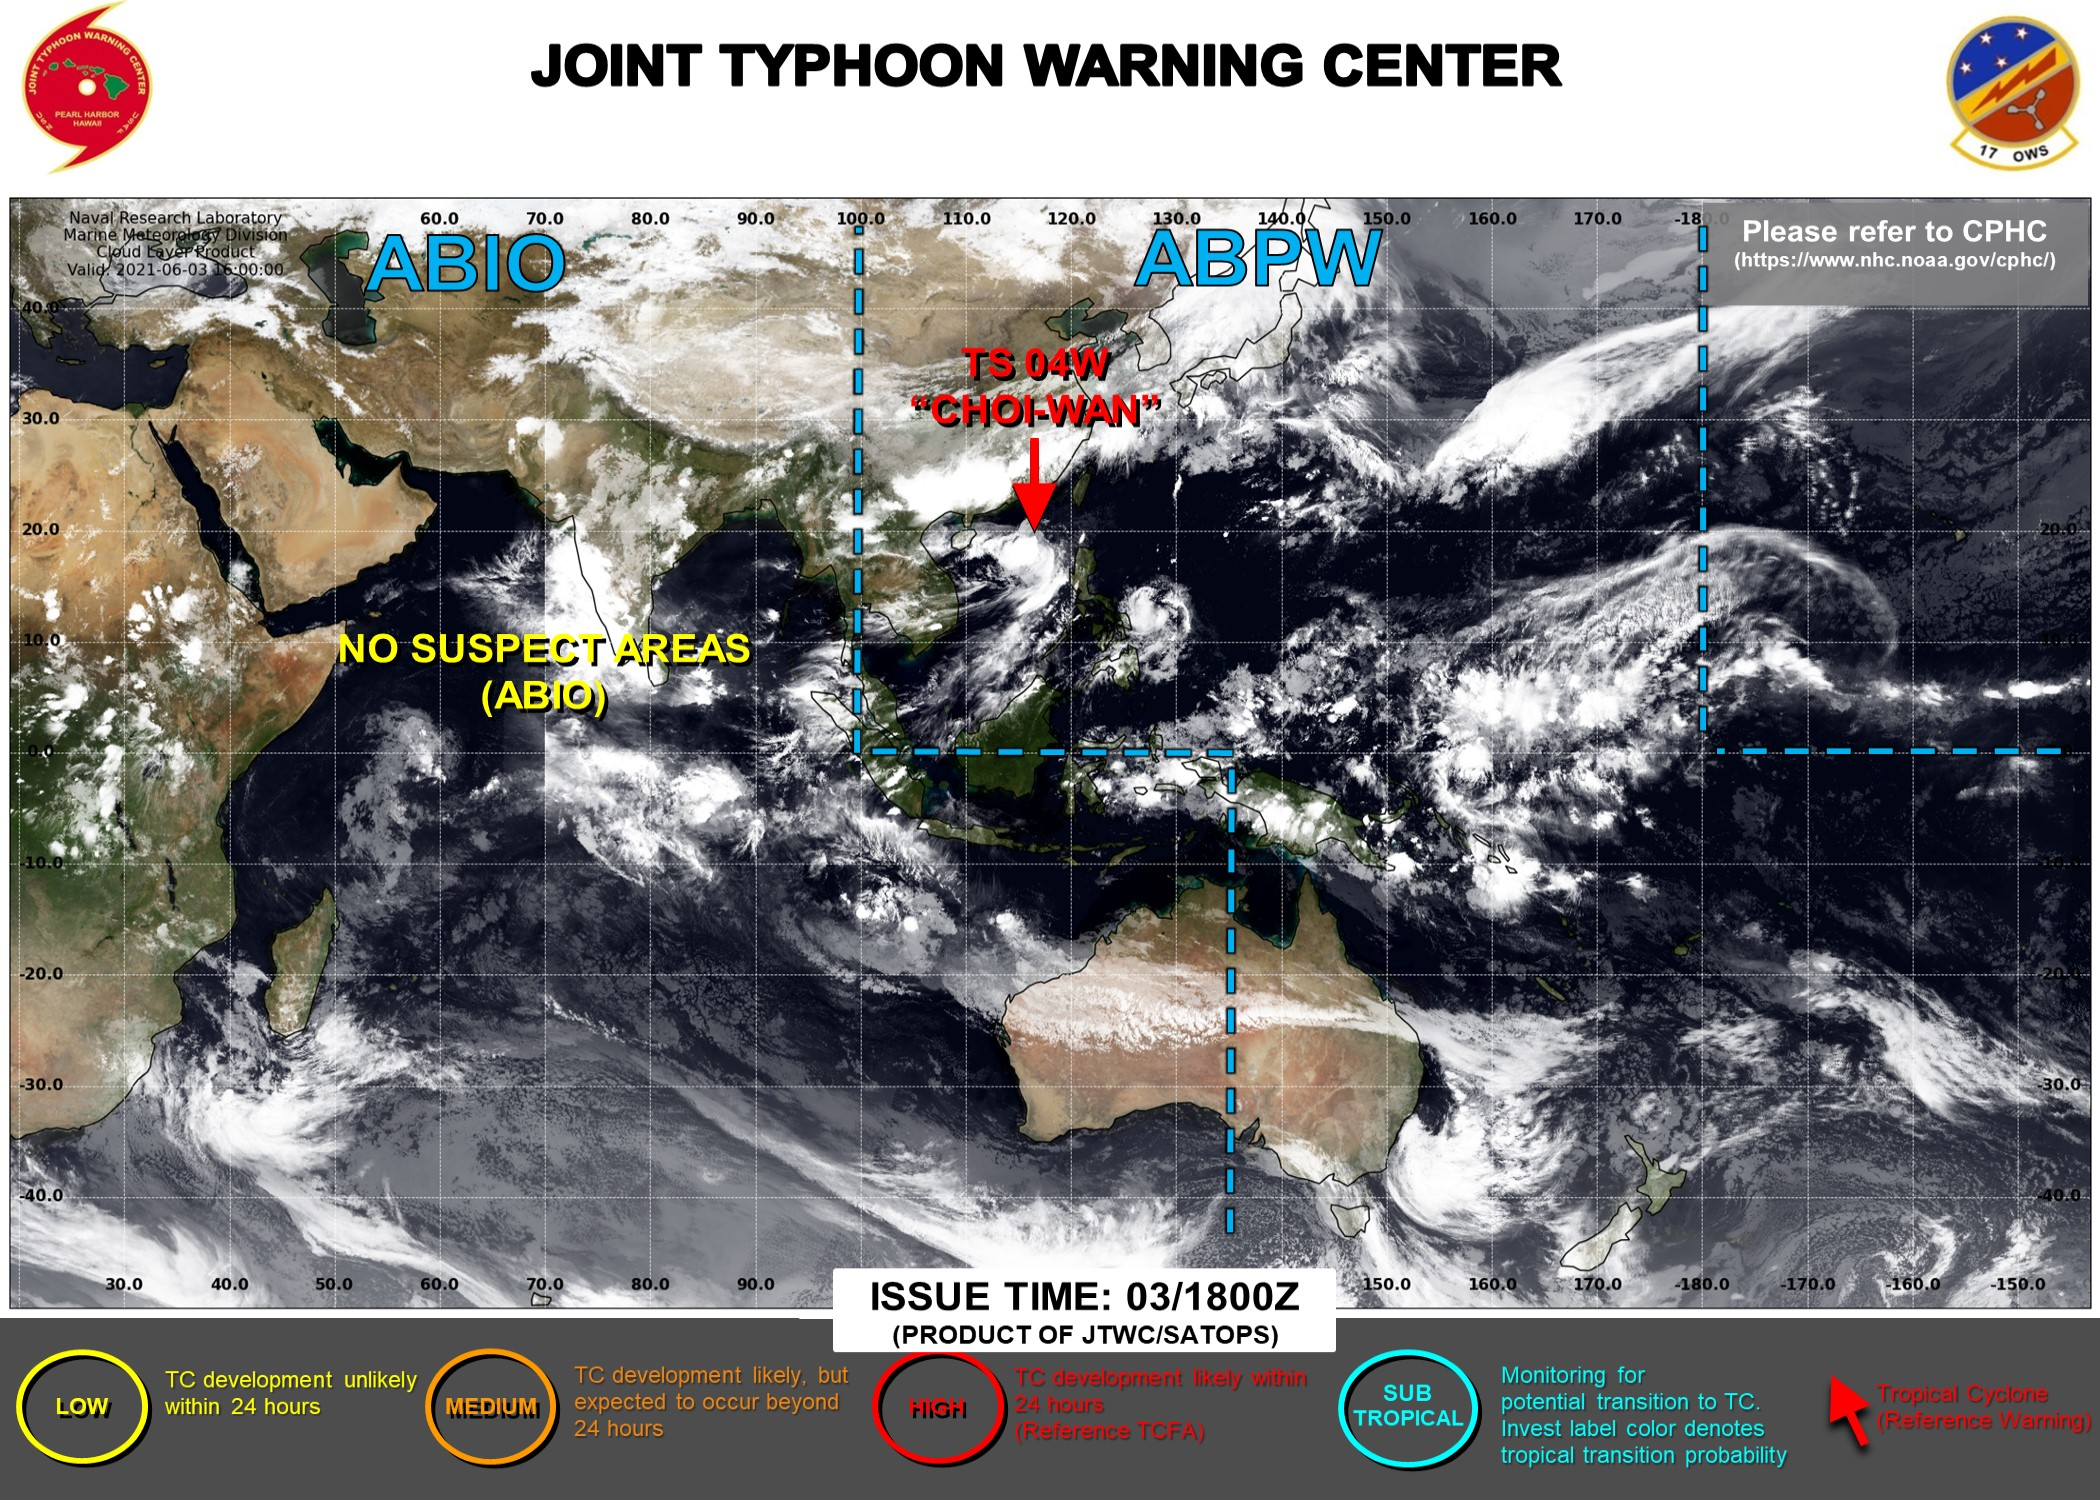 JTWC HAS BEEN ISSUING 6HOURLY WARNINGS AND 3HOURLY SATELLITE BULLETINS ON 04W. INVEST 93S HAS BEEN REMOVED FROM THE MAP AS THE AREA IS NO LONGER CONSIDERED HAVING POTENTIAL TO DEVELOP WITHIN 24H.